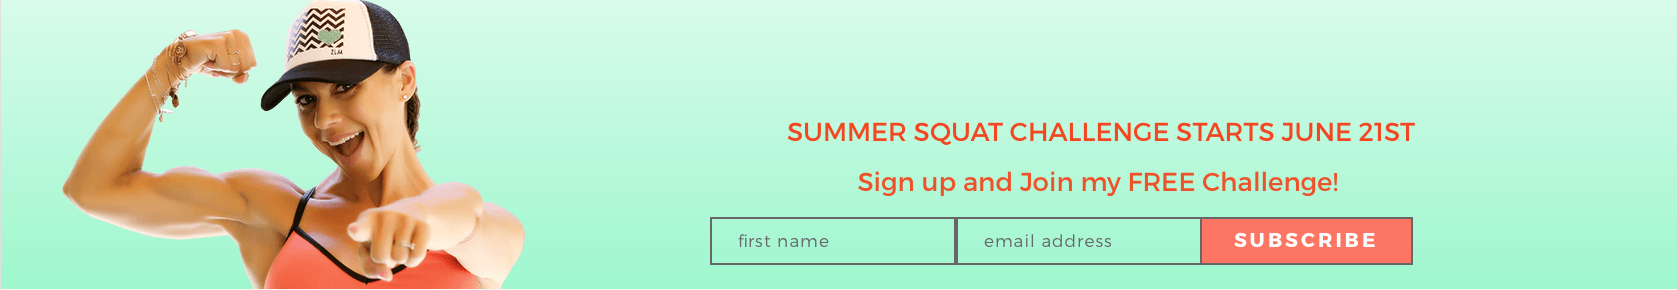 HEALTH & FITNESS by GINA ALIOTTI: Summer Squat Challenge Starts June 21st, are you in?